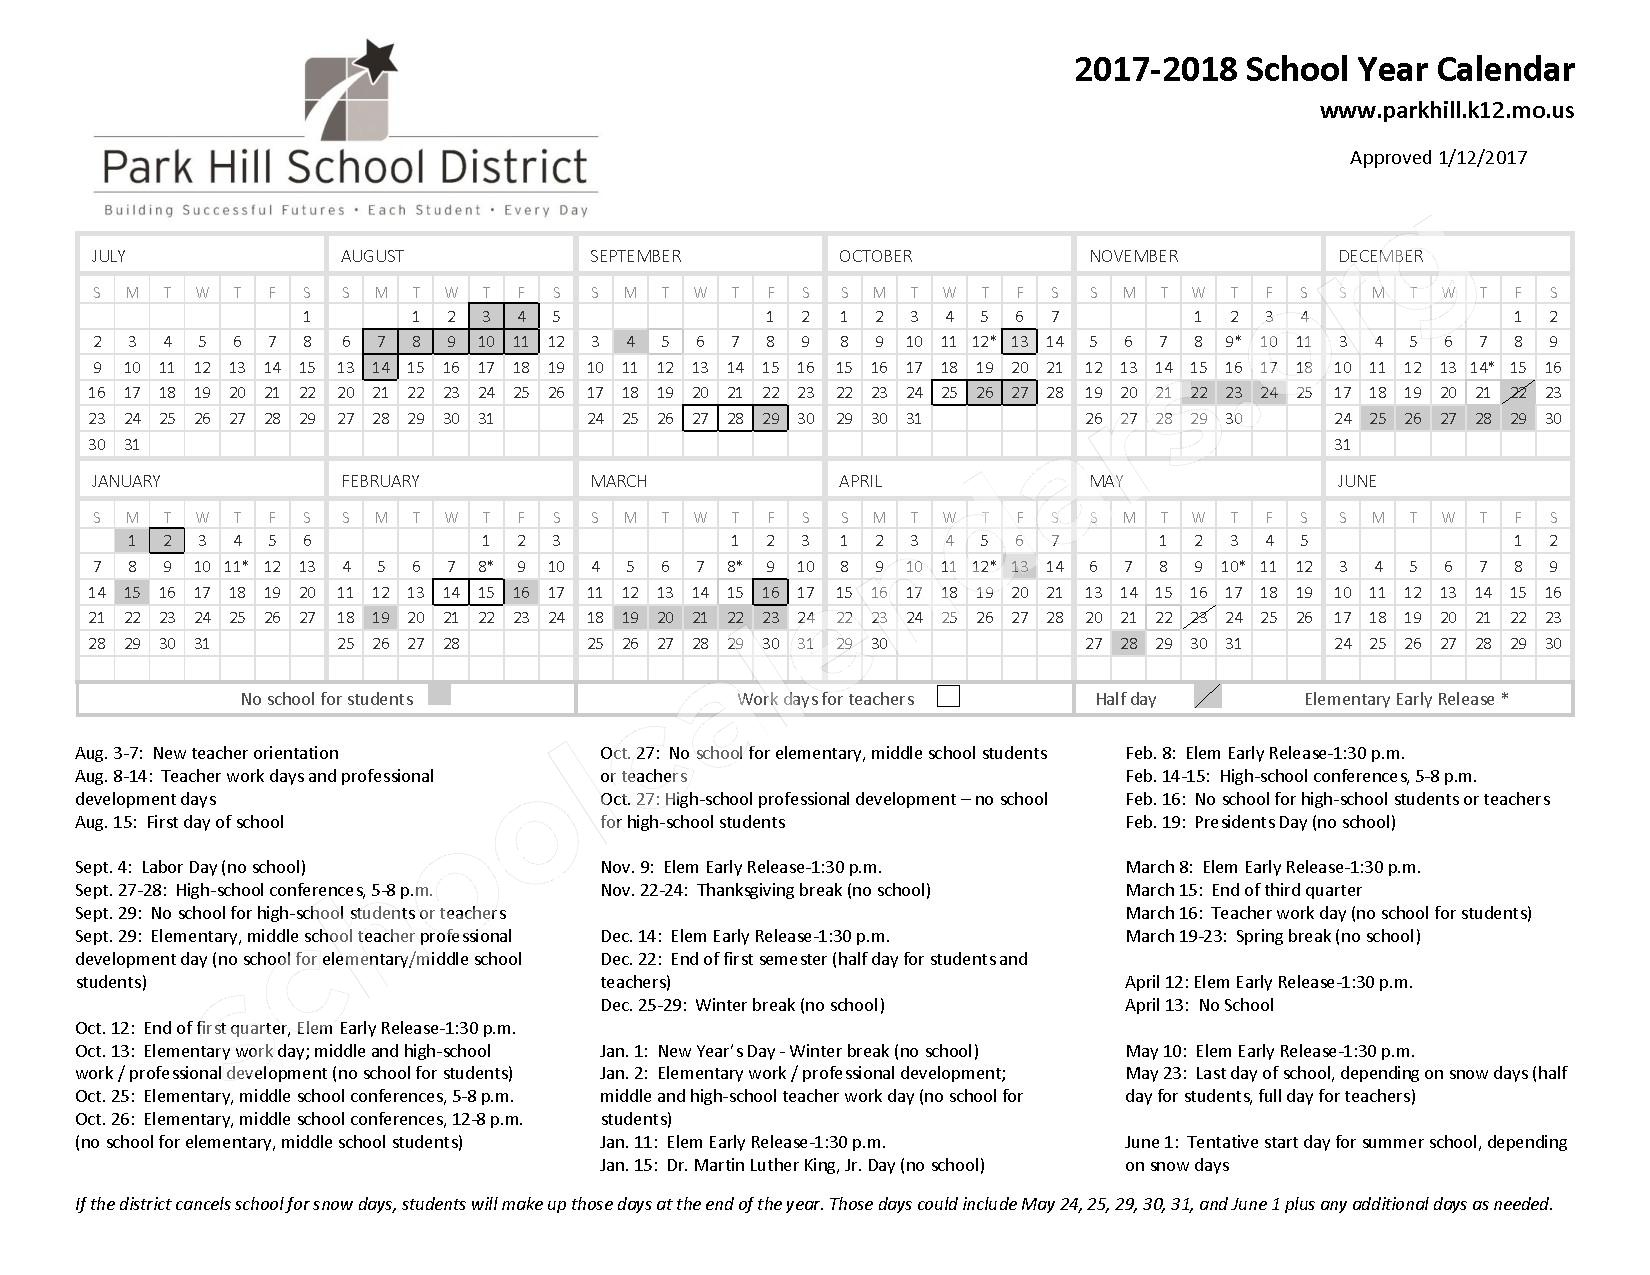 2017 - 2018 School Calendar – Park Hill School District – page 1